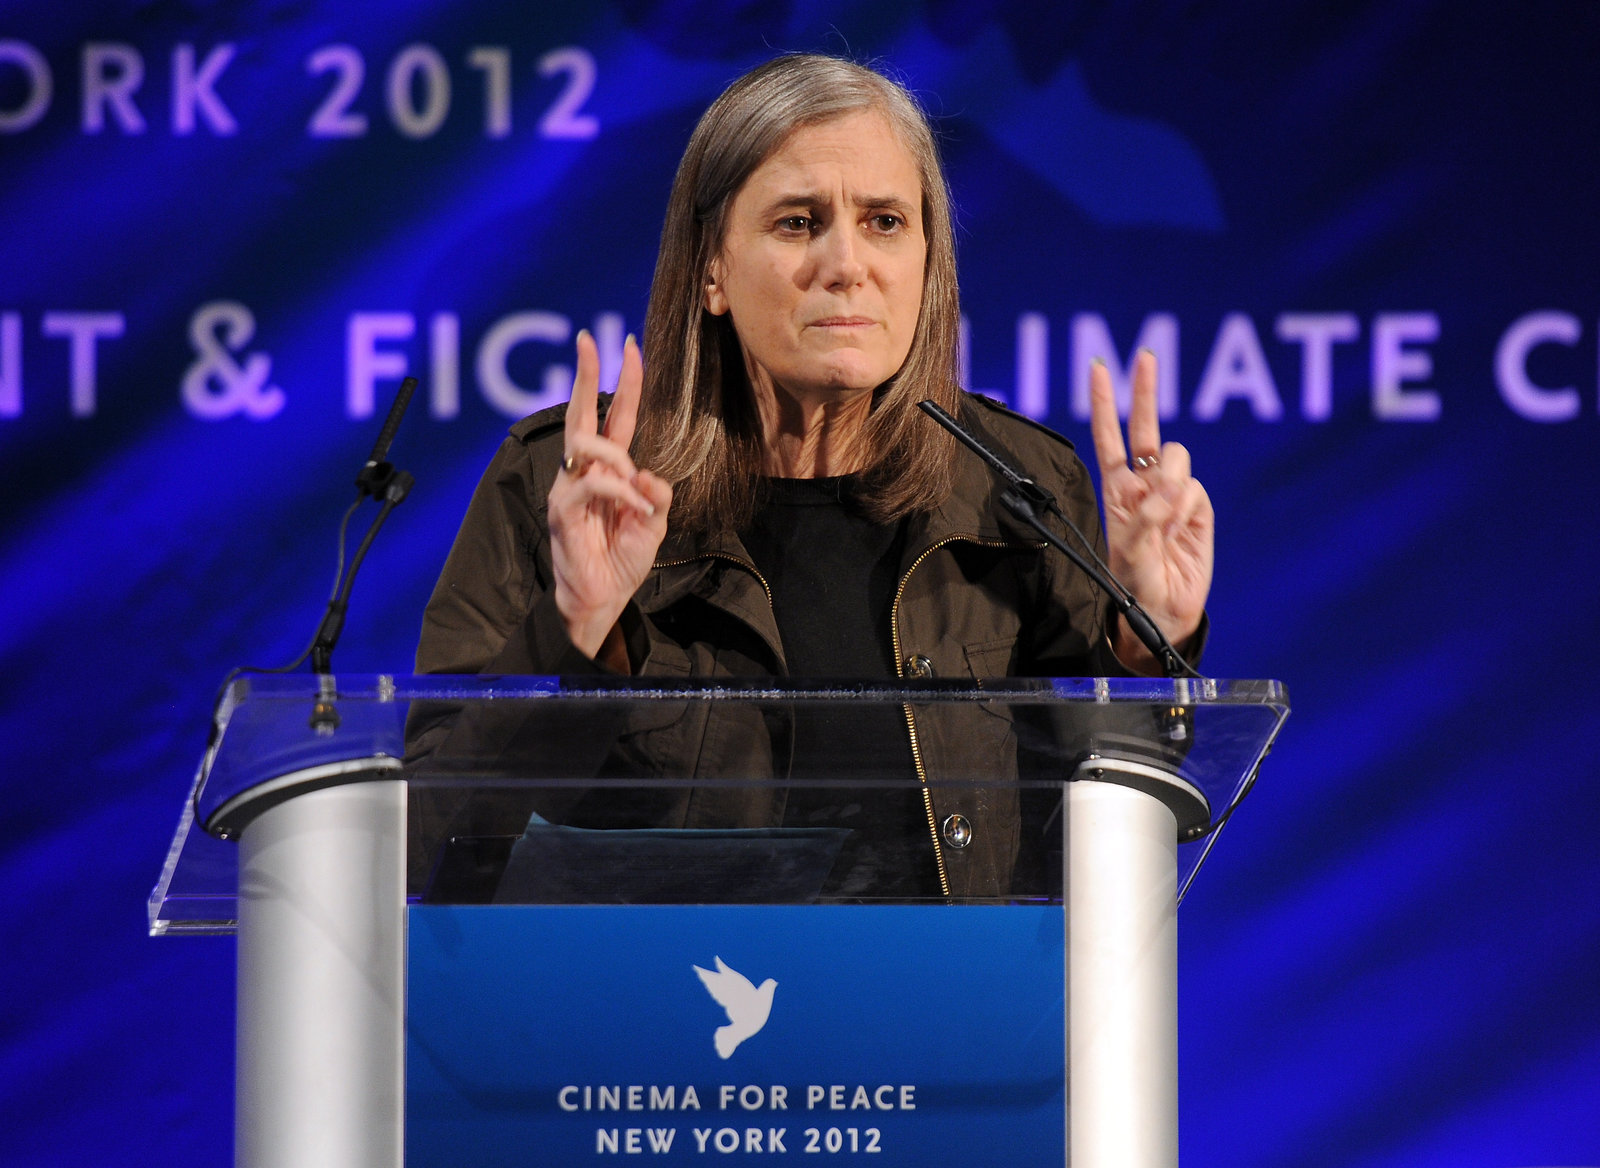 Amy Goodman of Democracy Now! faced criminal charges for her reporting in North Dakota